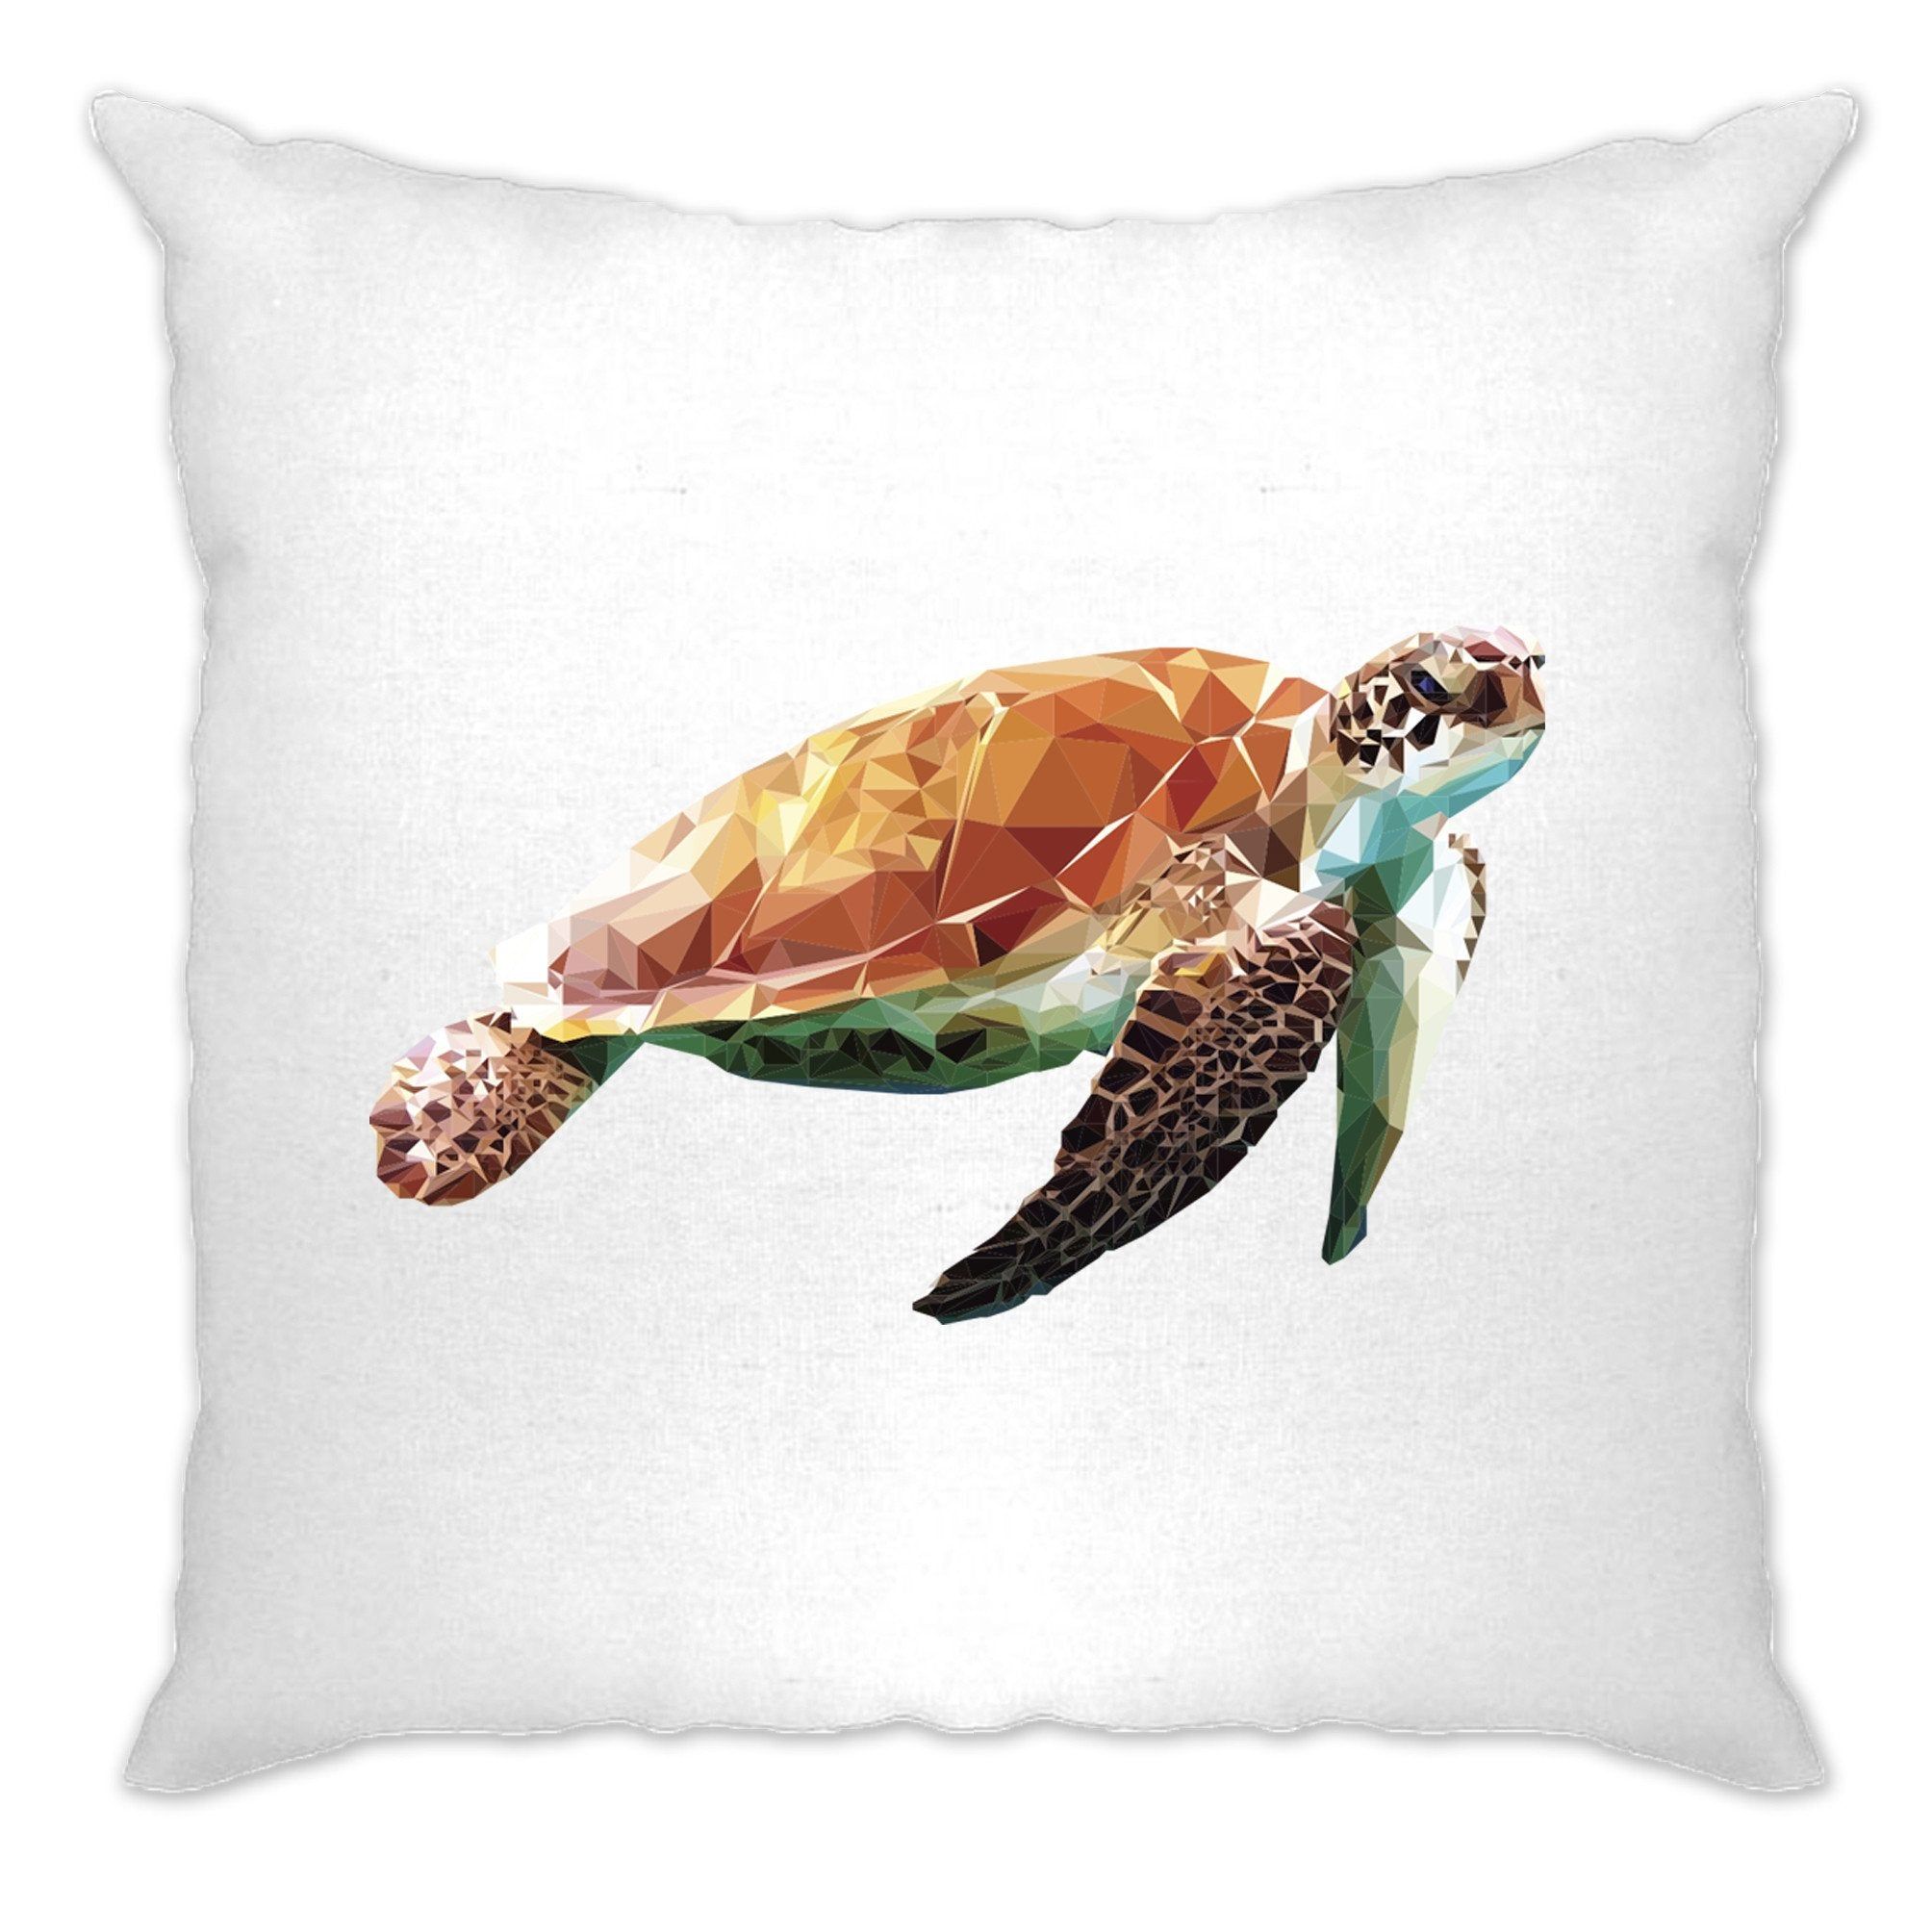 Sea Life Art Cushion Cover Low Poly Turtle Graphic